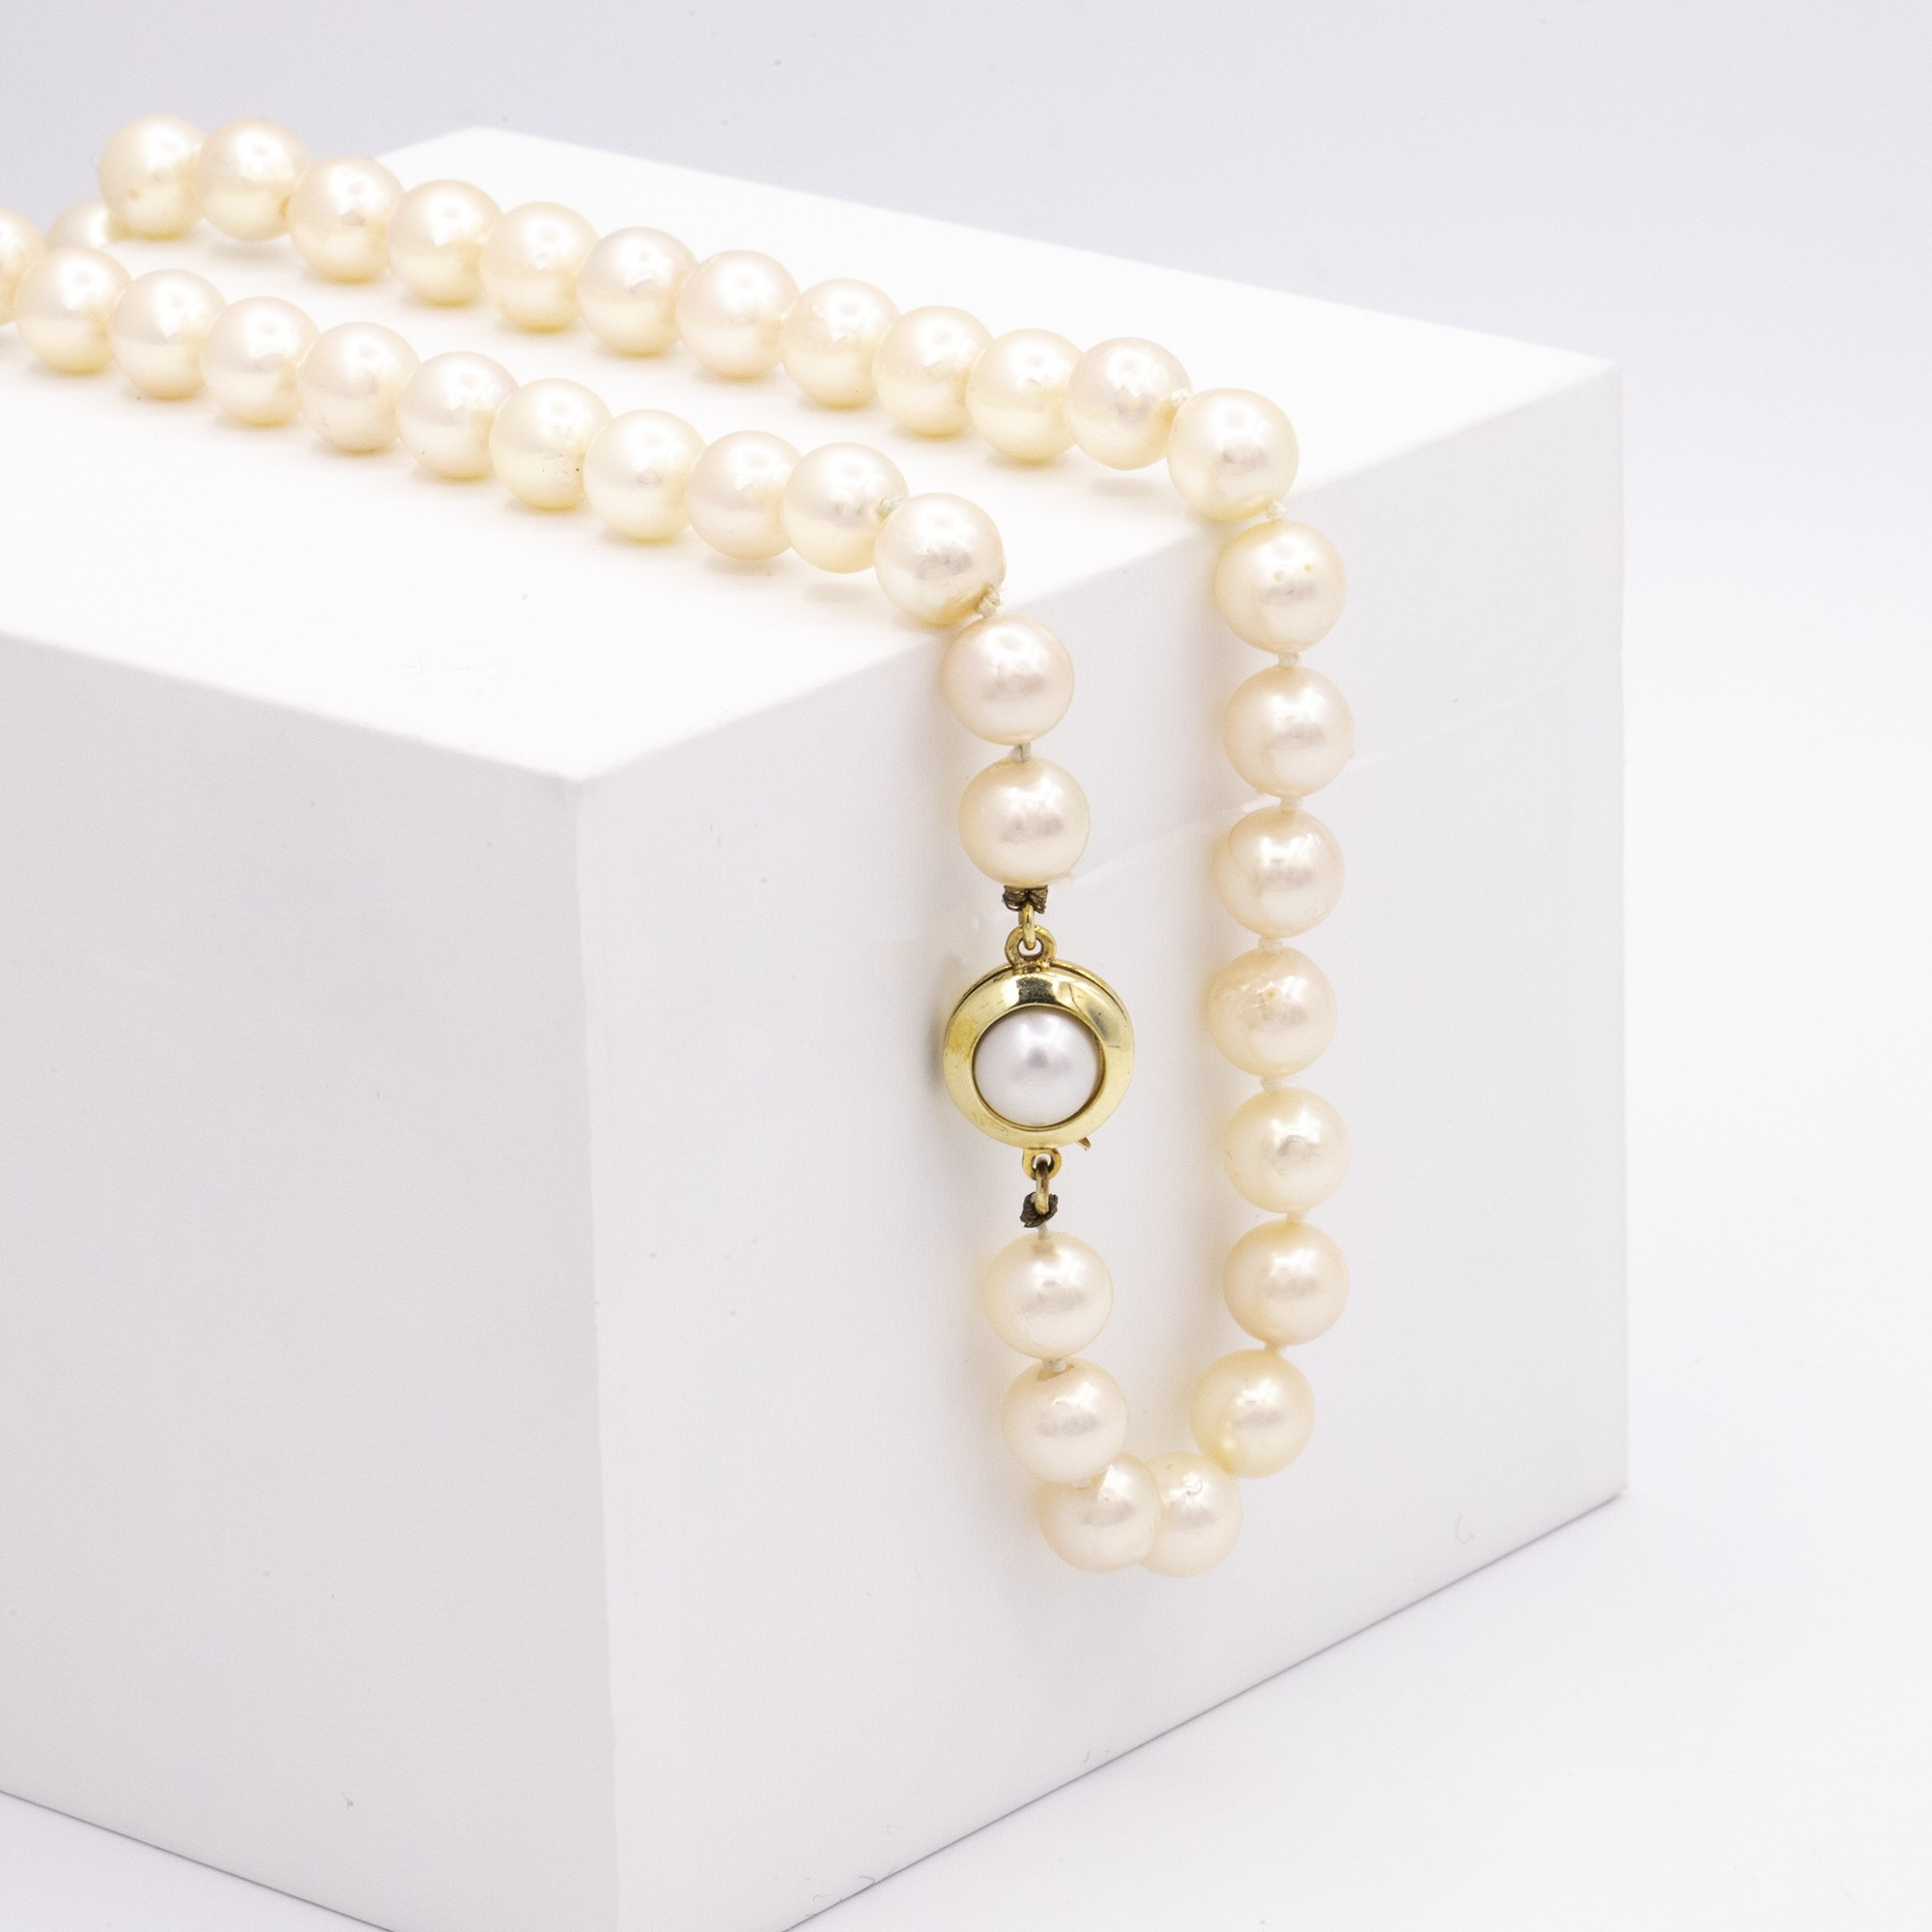 YELLOW GOLD PEARL HANK NECKLACE